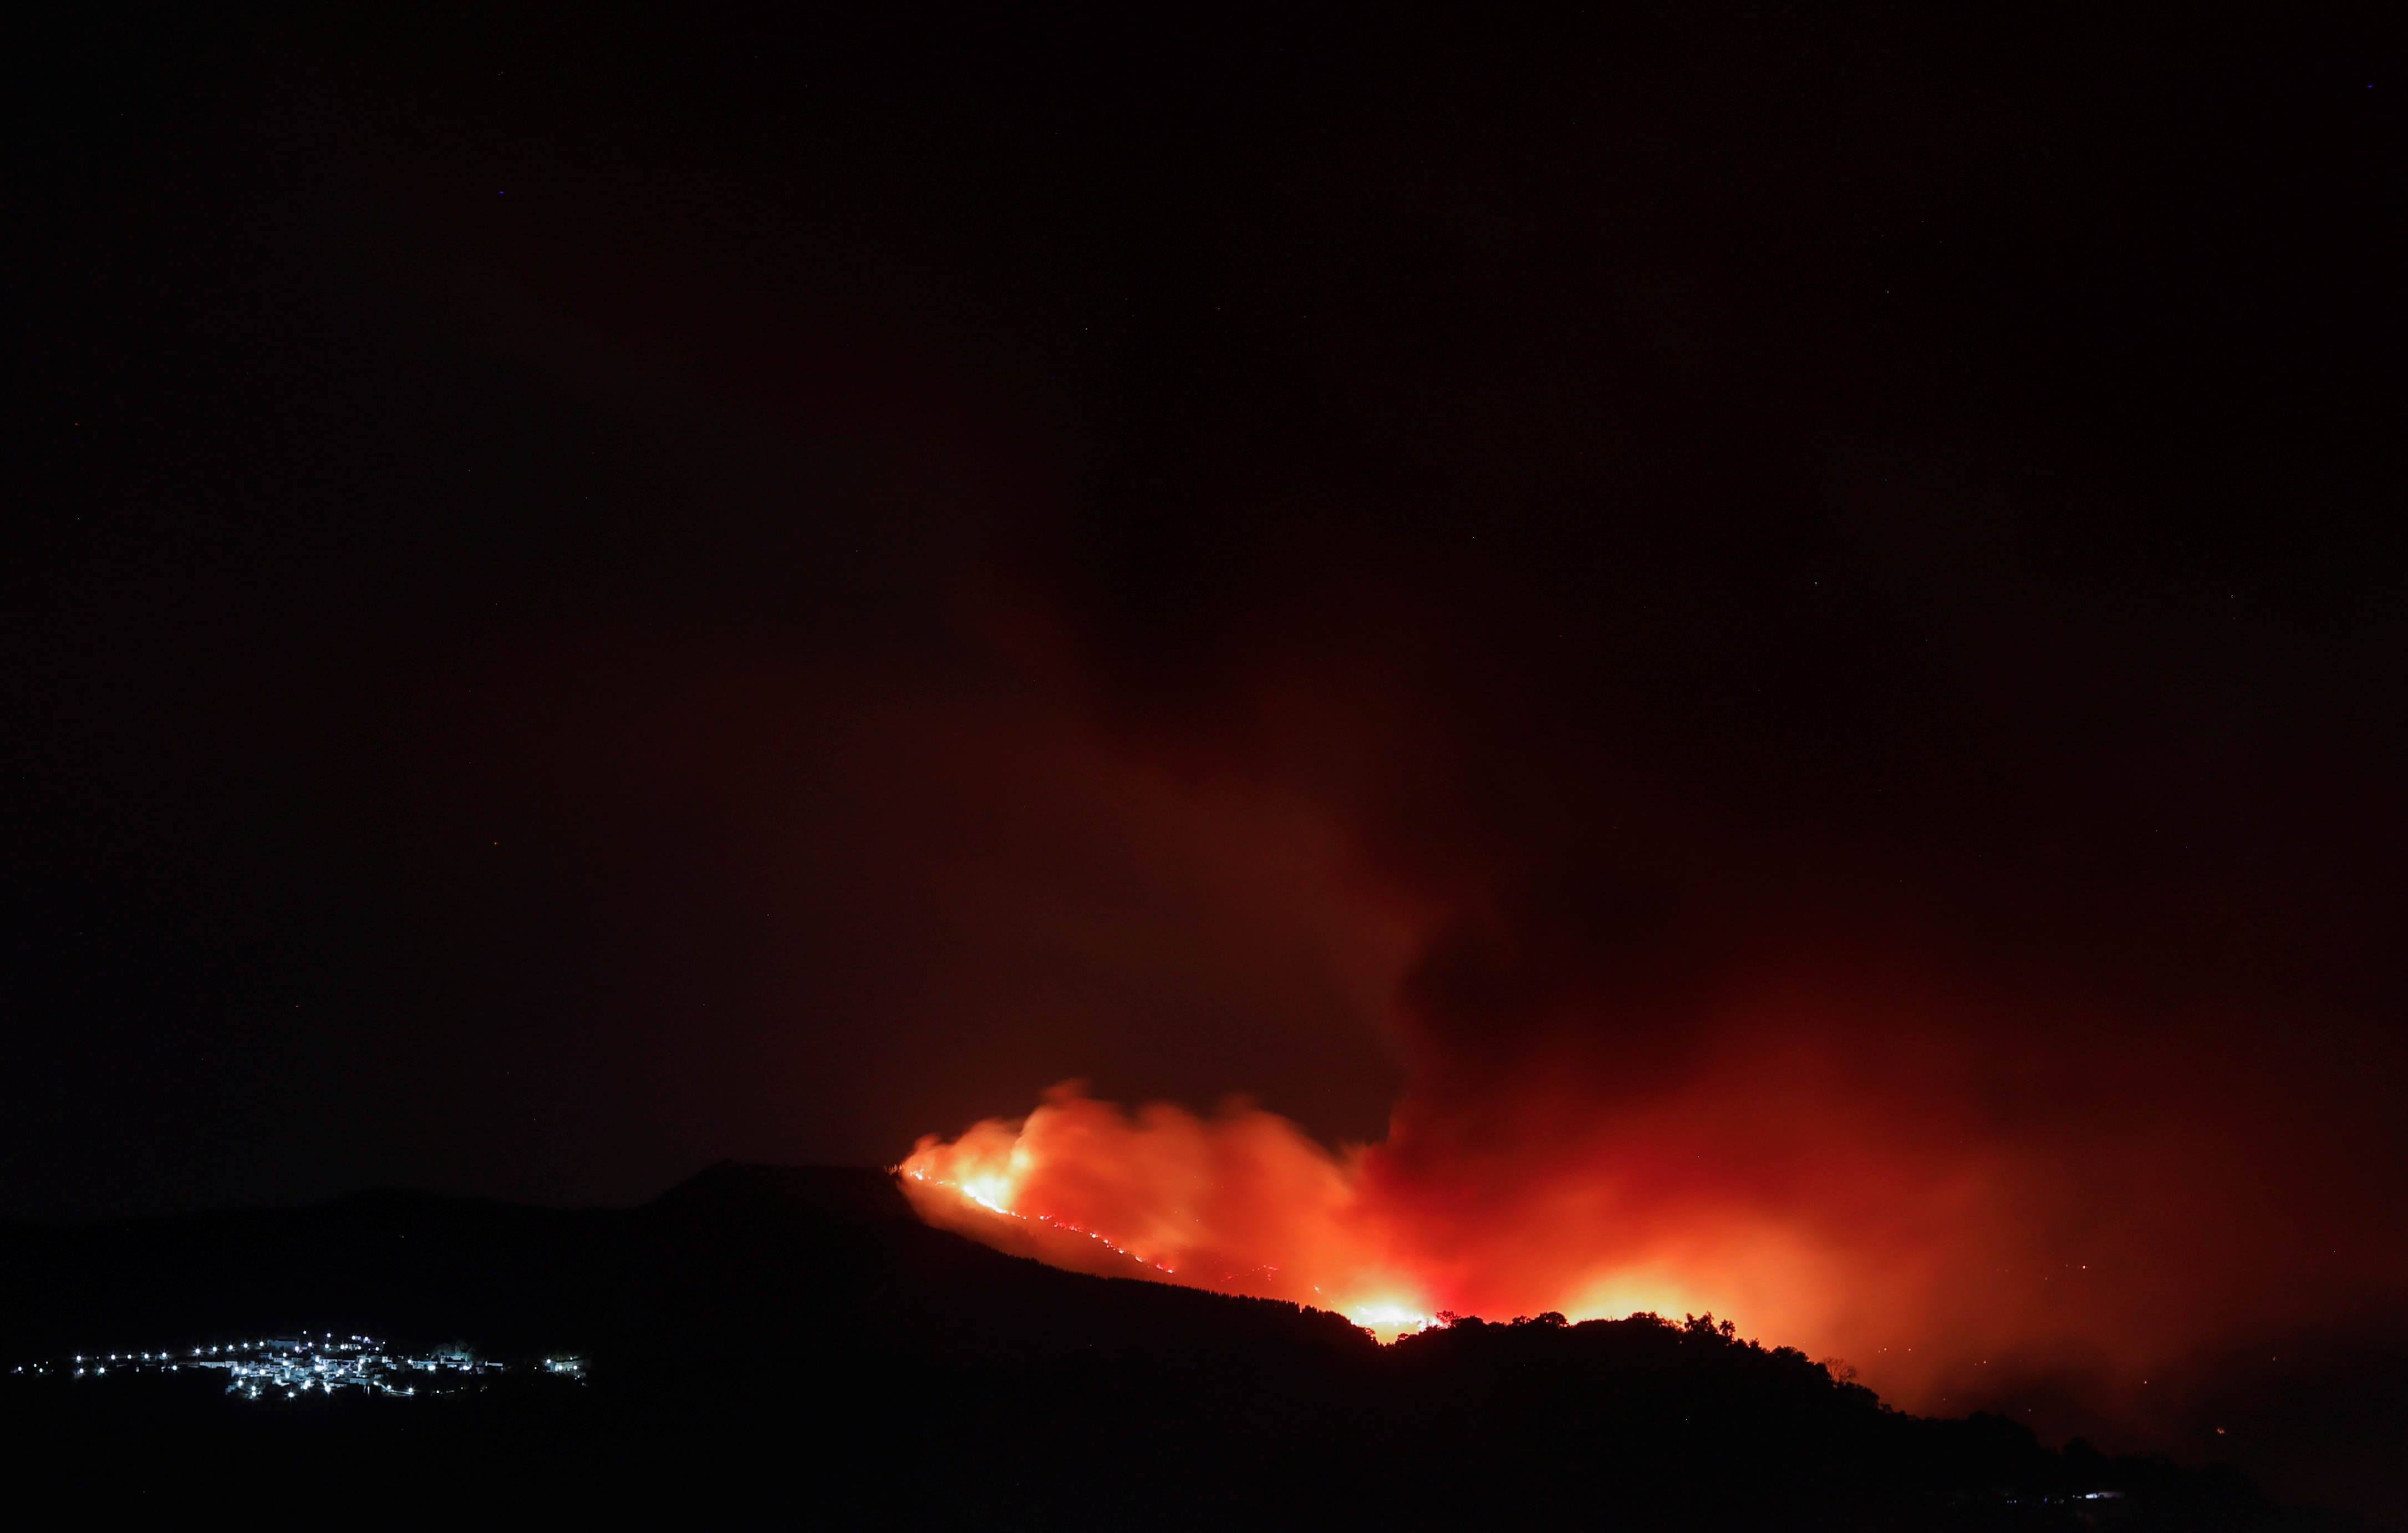 A wildfire is seen from a balcony near the town of Pujerra, which was evacuated, in Cartajima, near Estepona, Spain, September 12, 2021. REUTERS/Jon Nazca